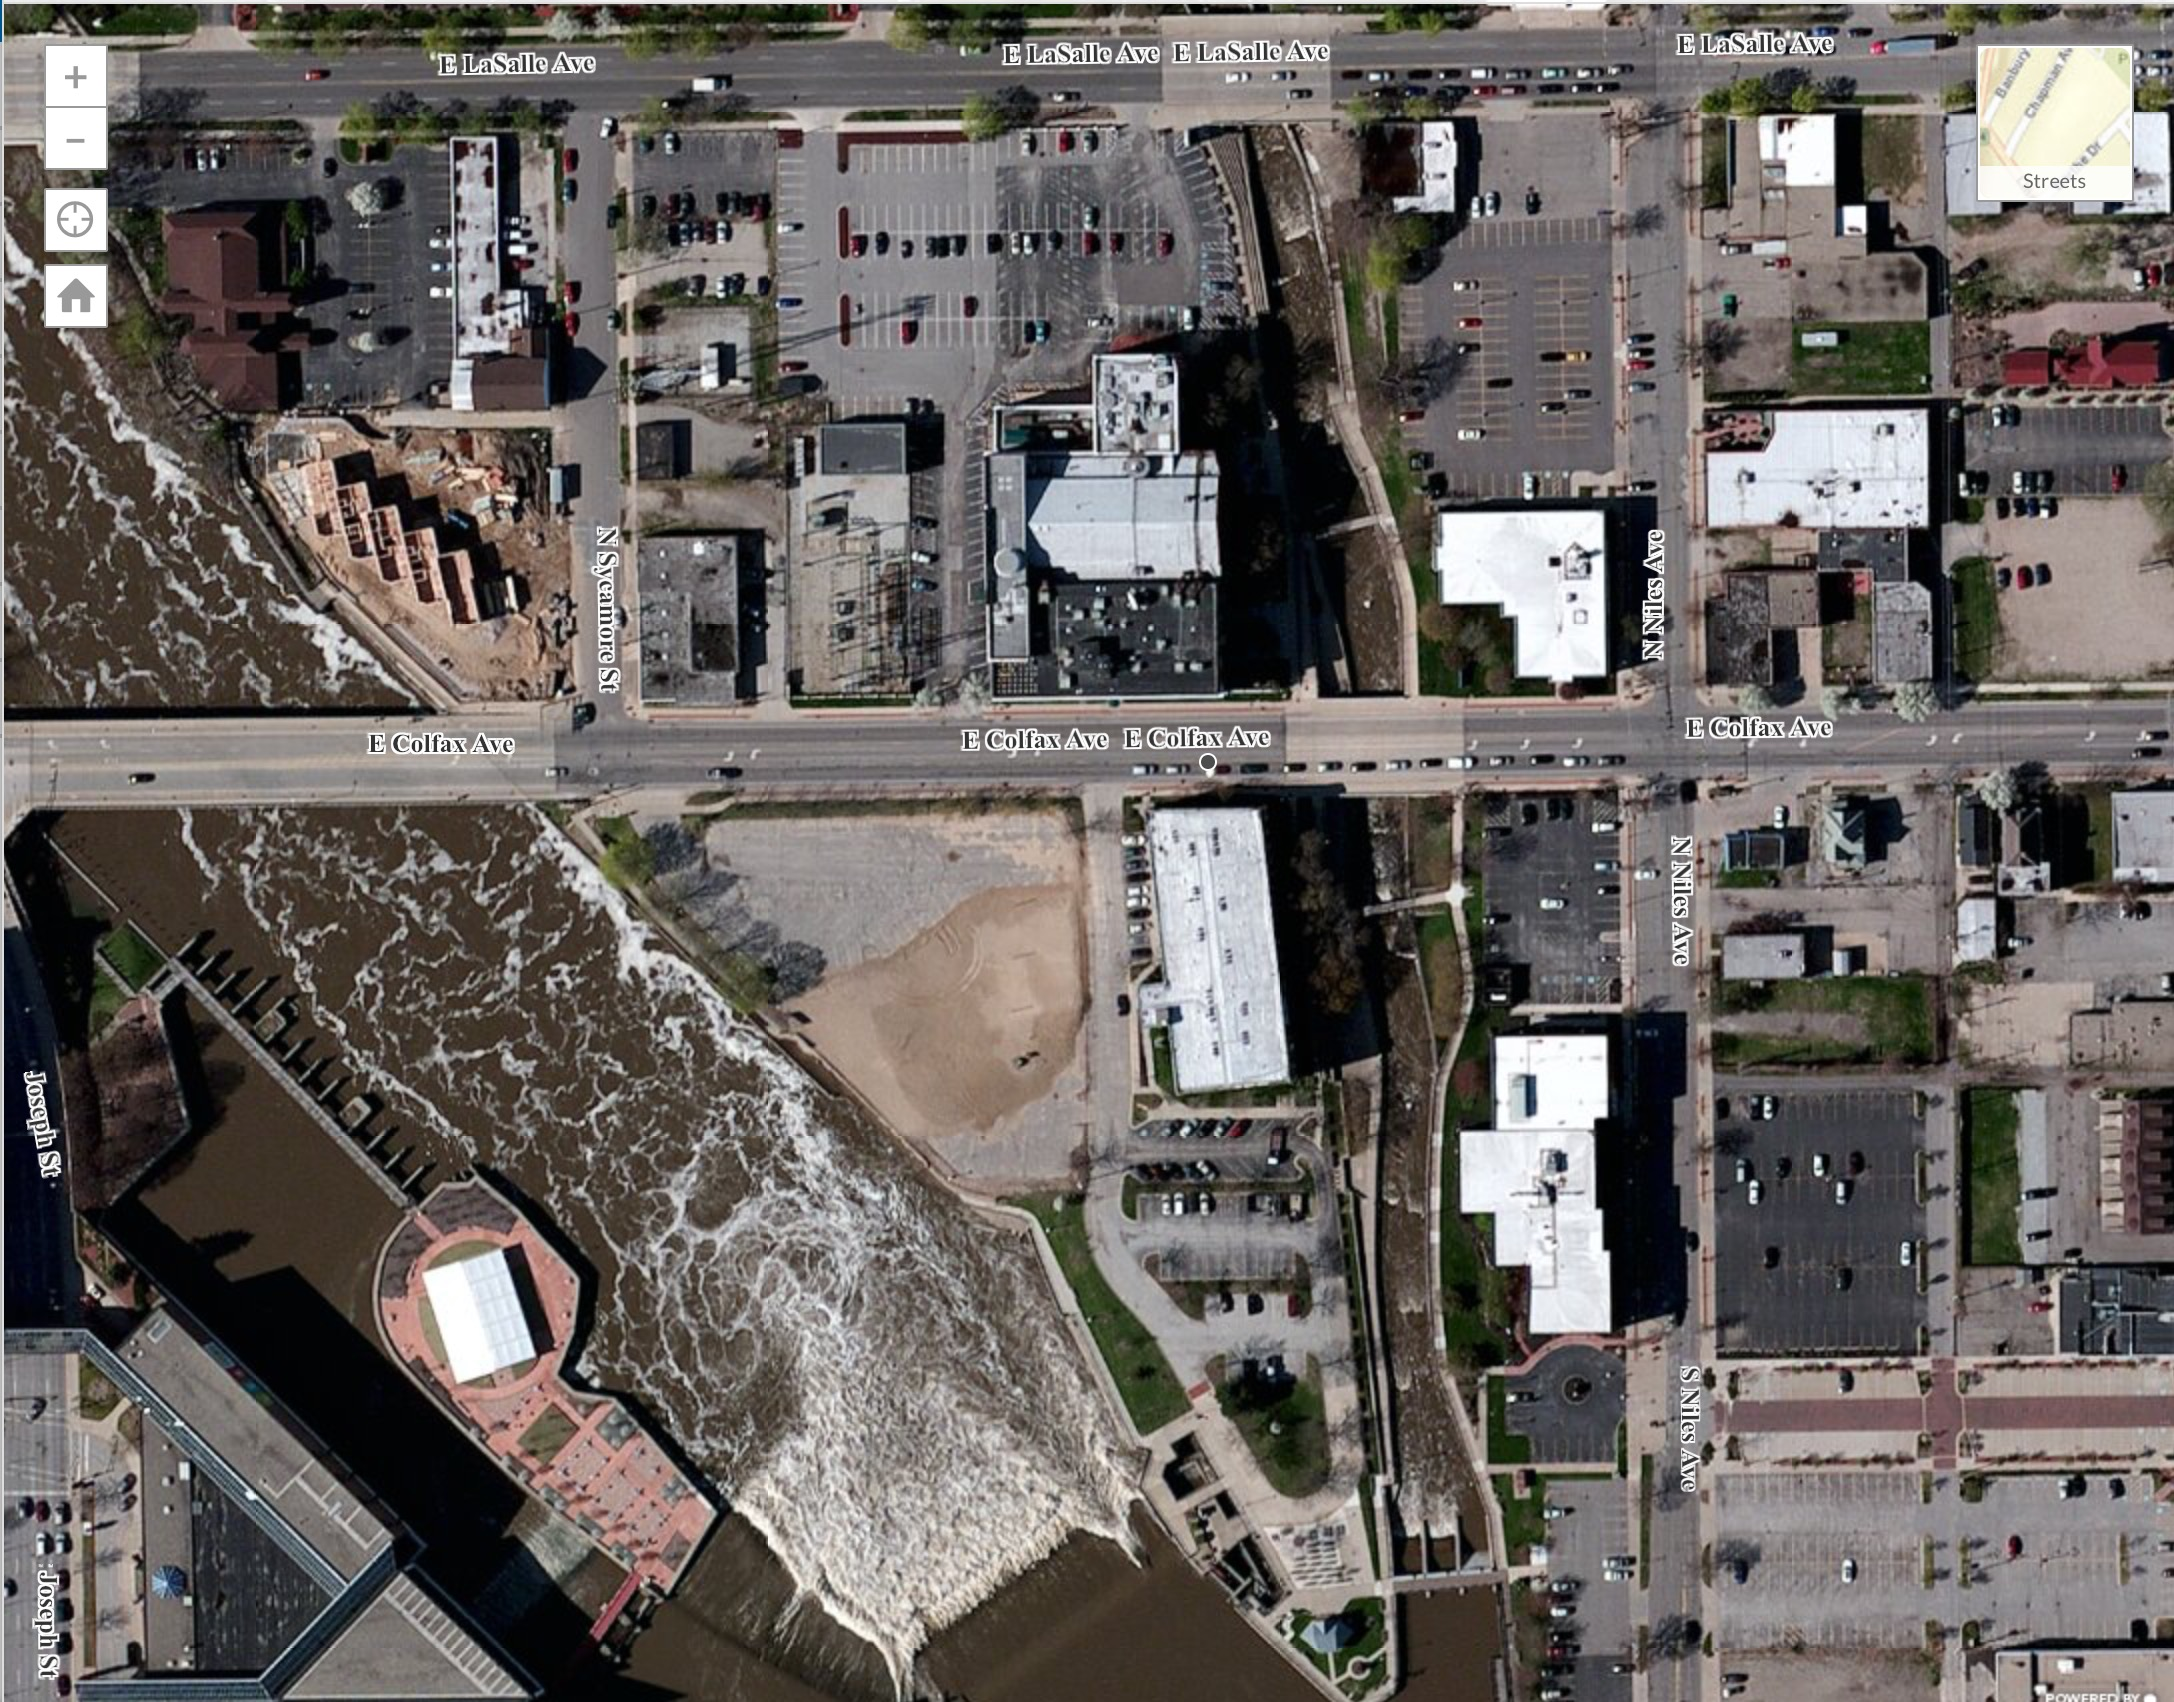 The relevant lot is between Lasalle and Colfax, just west of the East Race River.